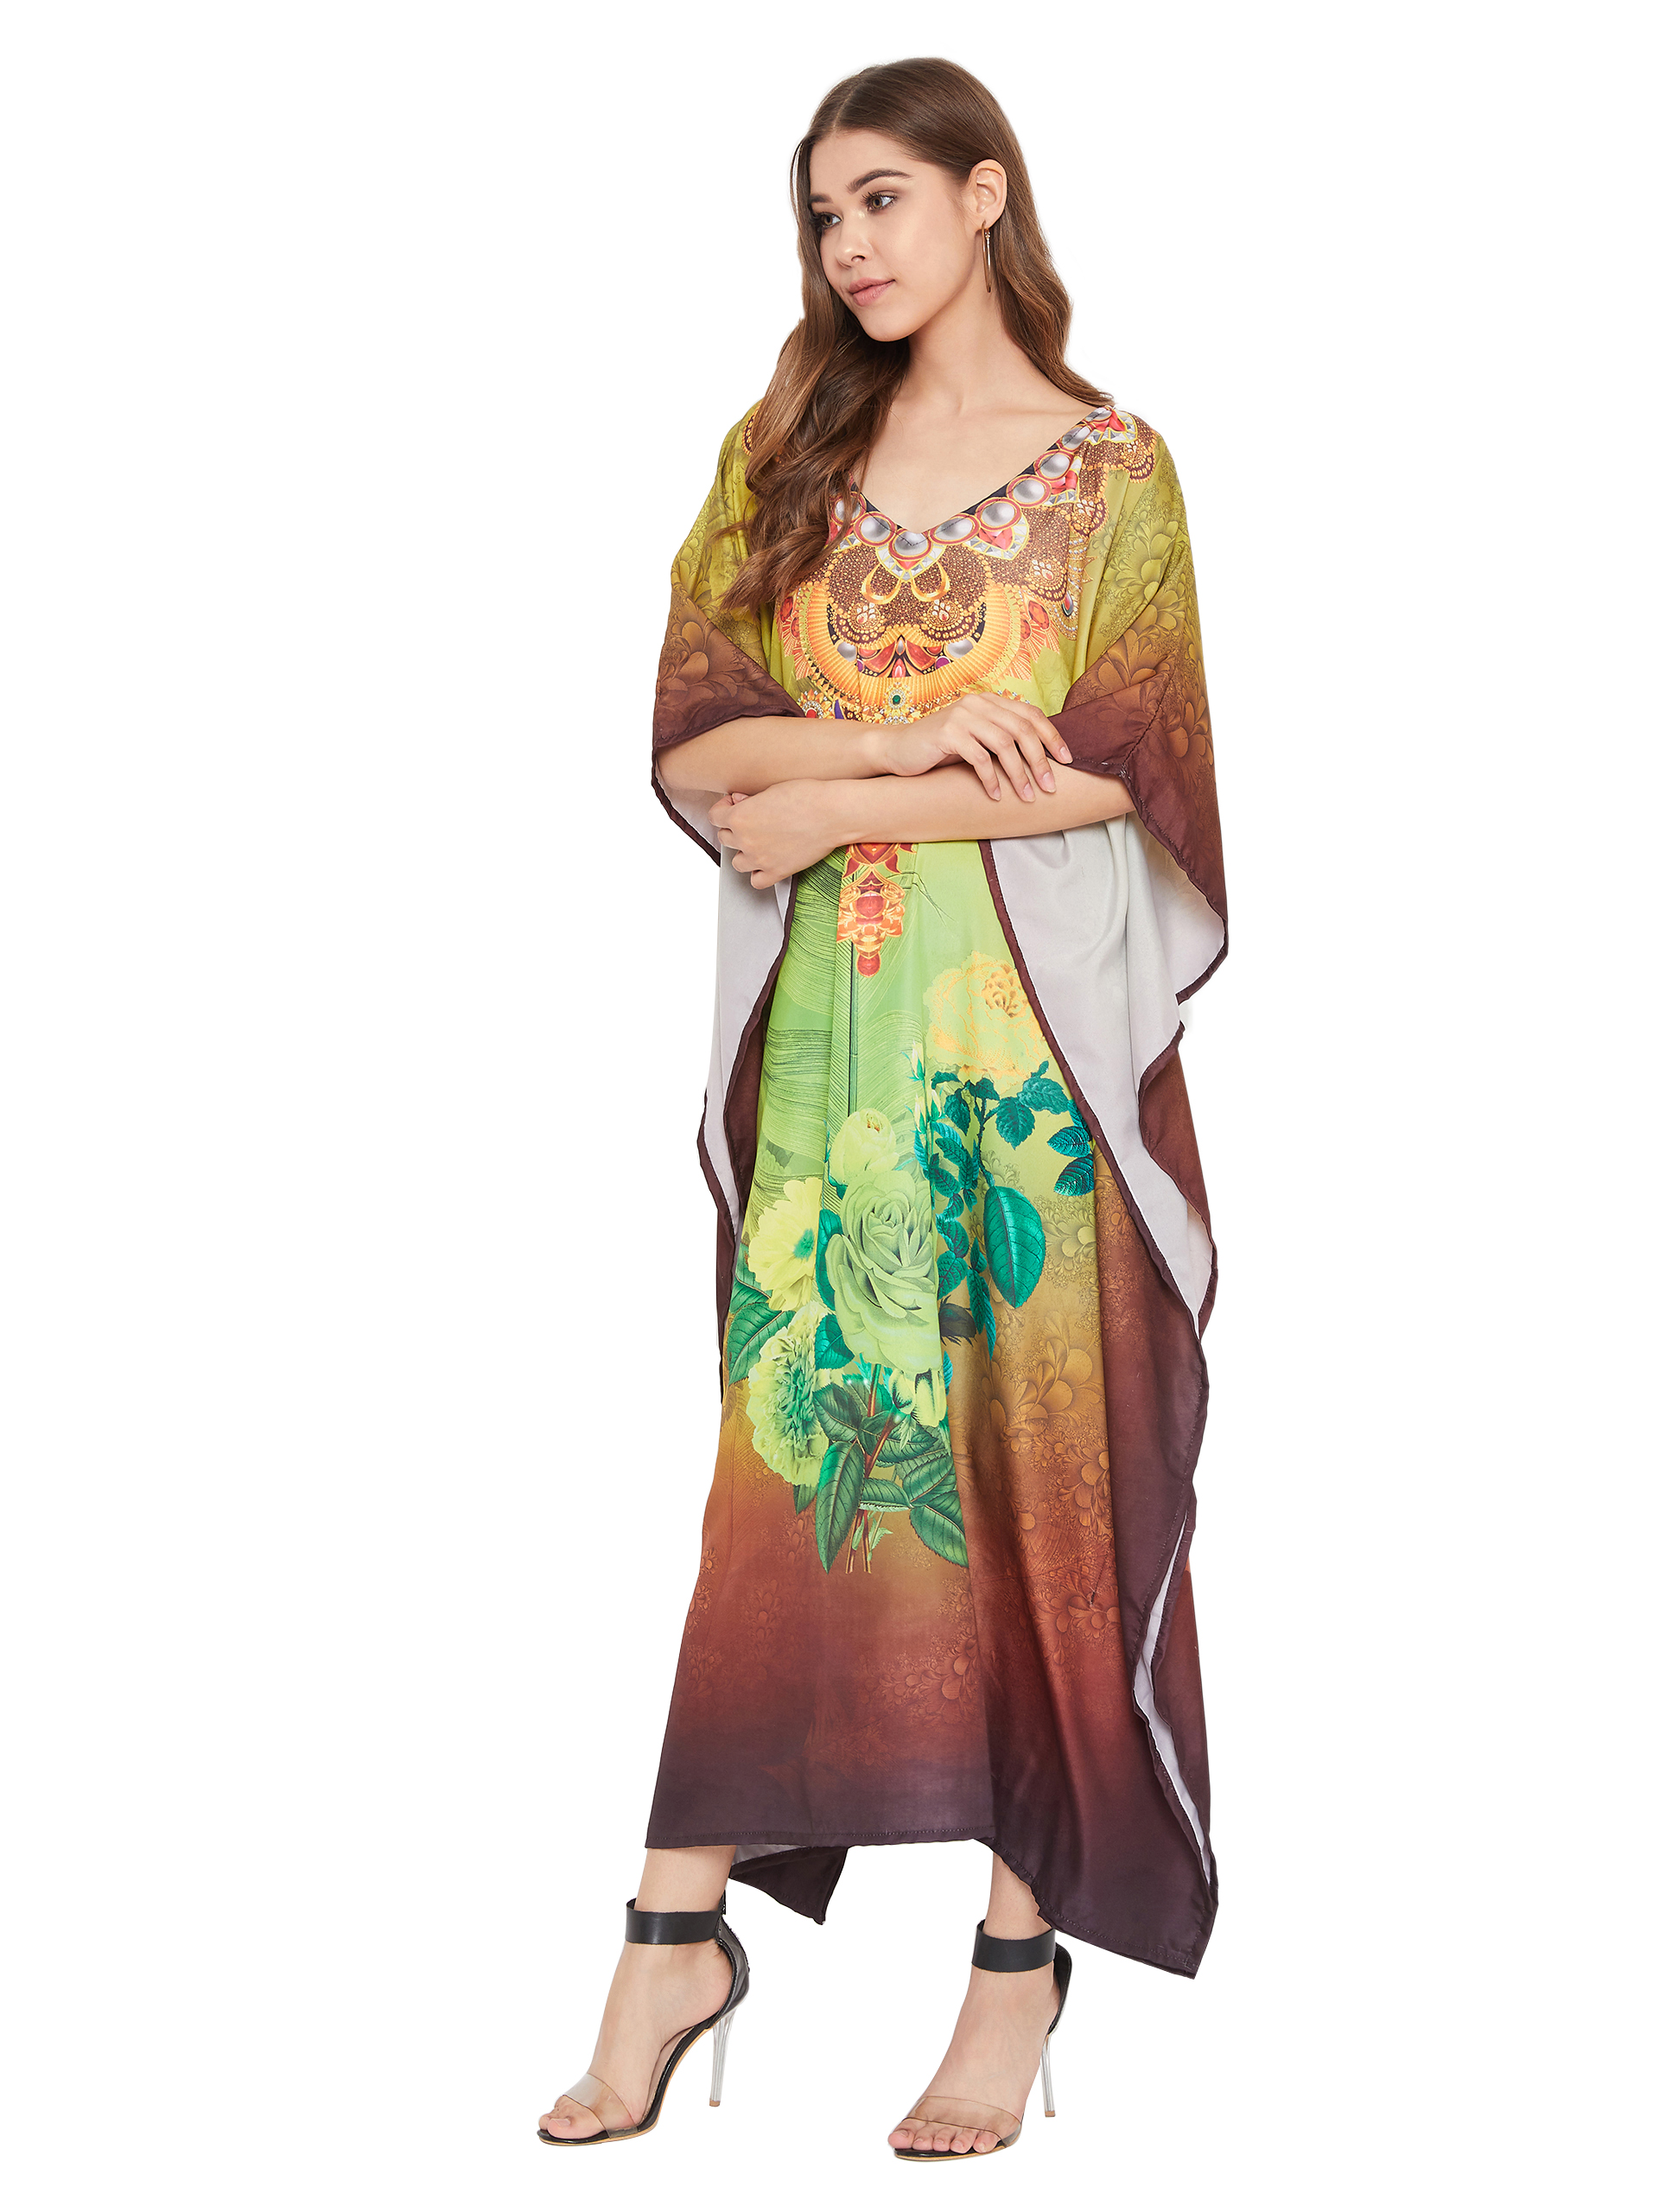 Details about  /Fsshion Women New African embroidered Maxi Dress Loose Party  Clothes Kaftan